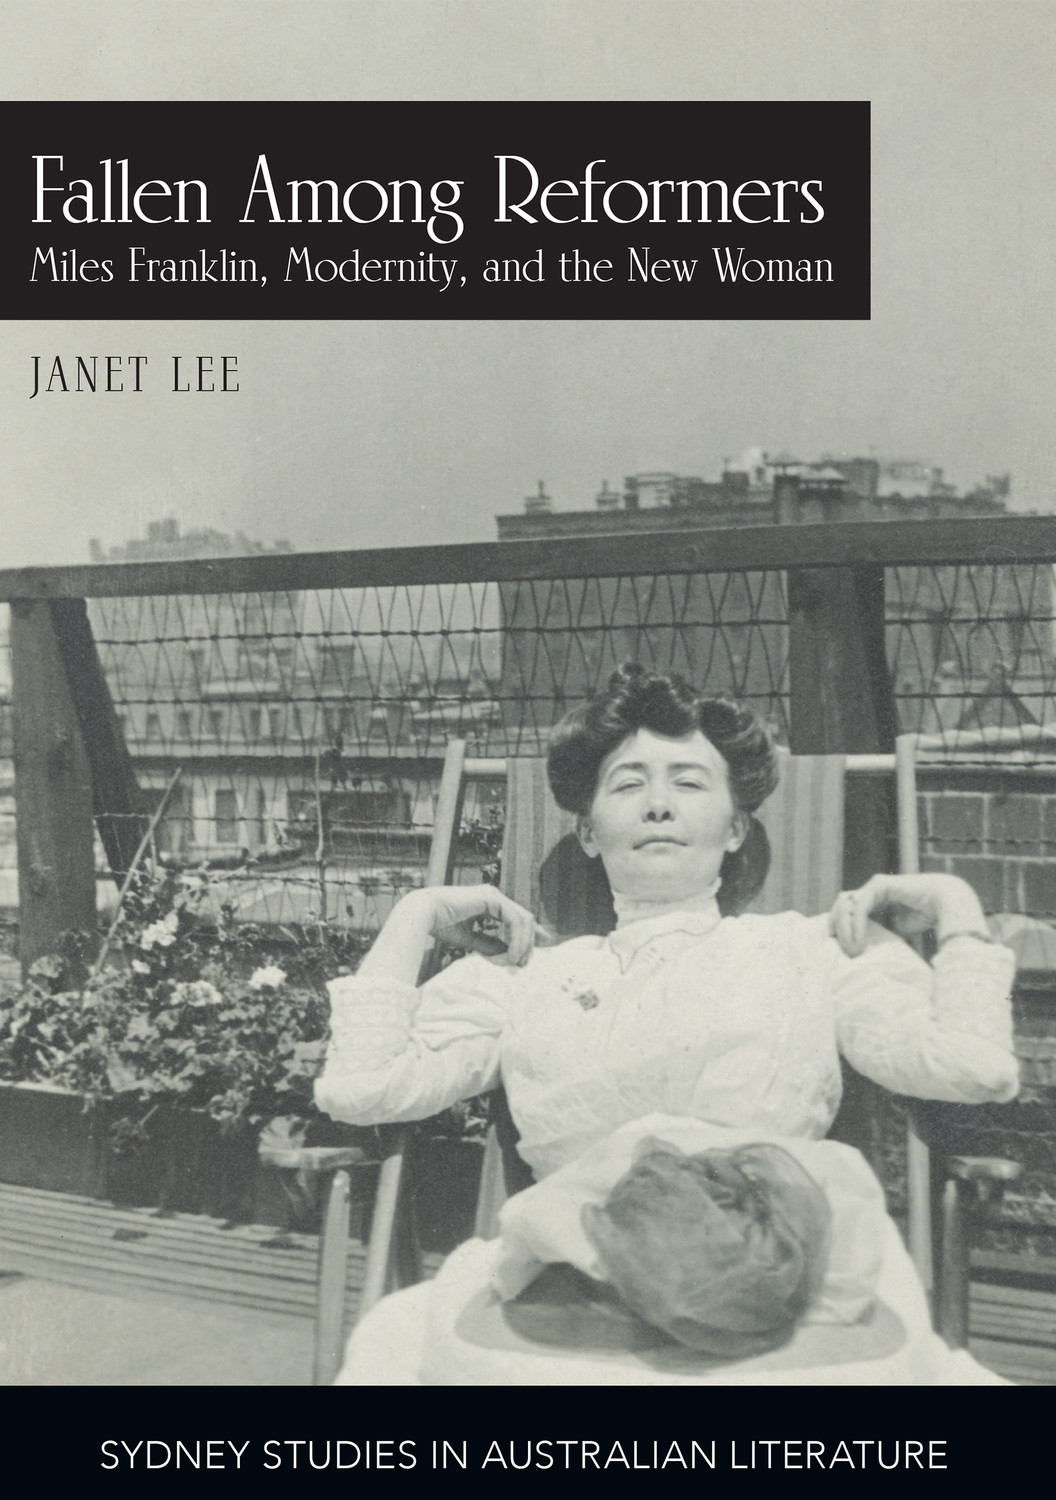 Fallen Among Reformers: Miles Franklin, Modernity and the New Woman